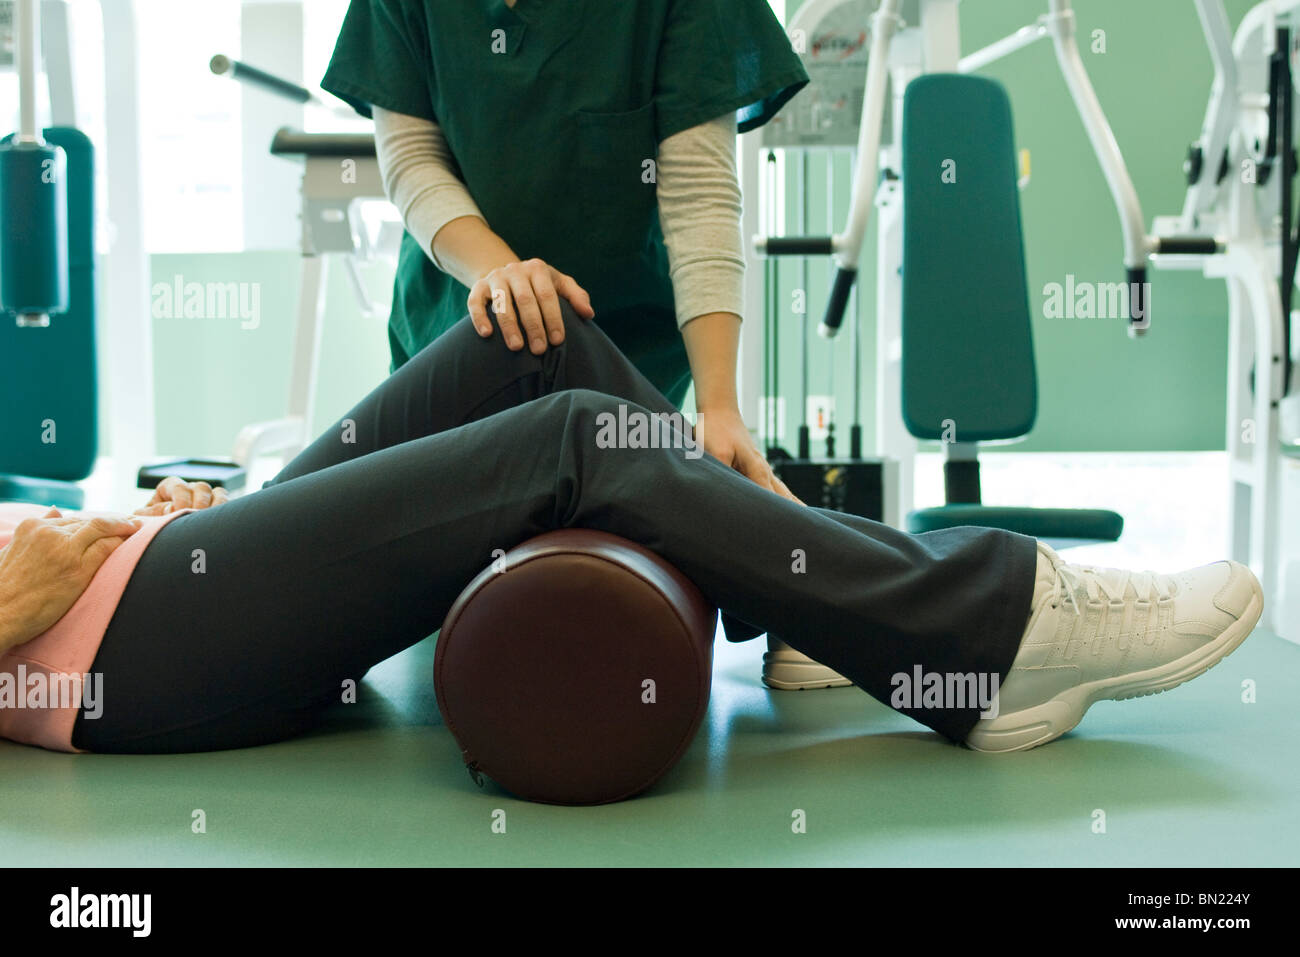 Patient receiving physical therapy treatment - Stock Image